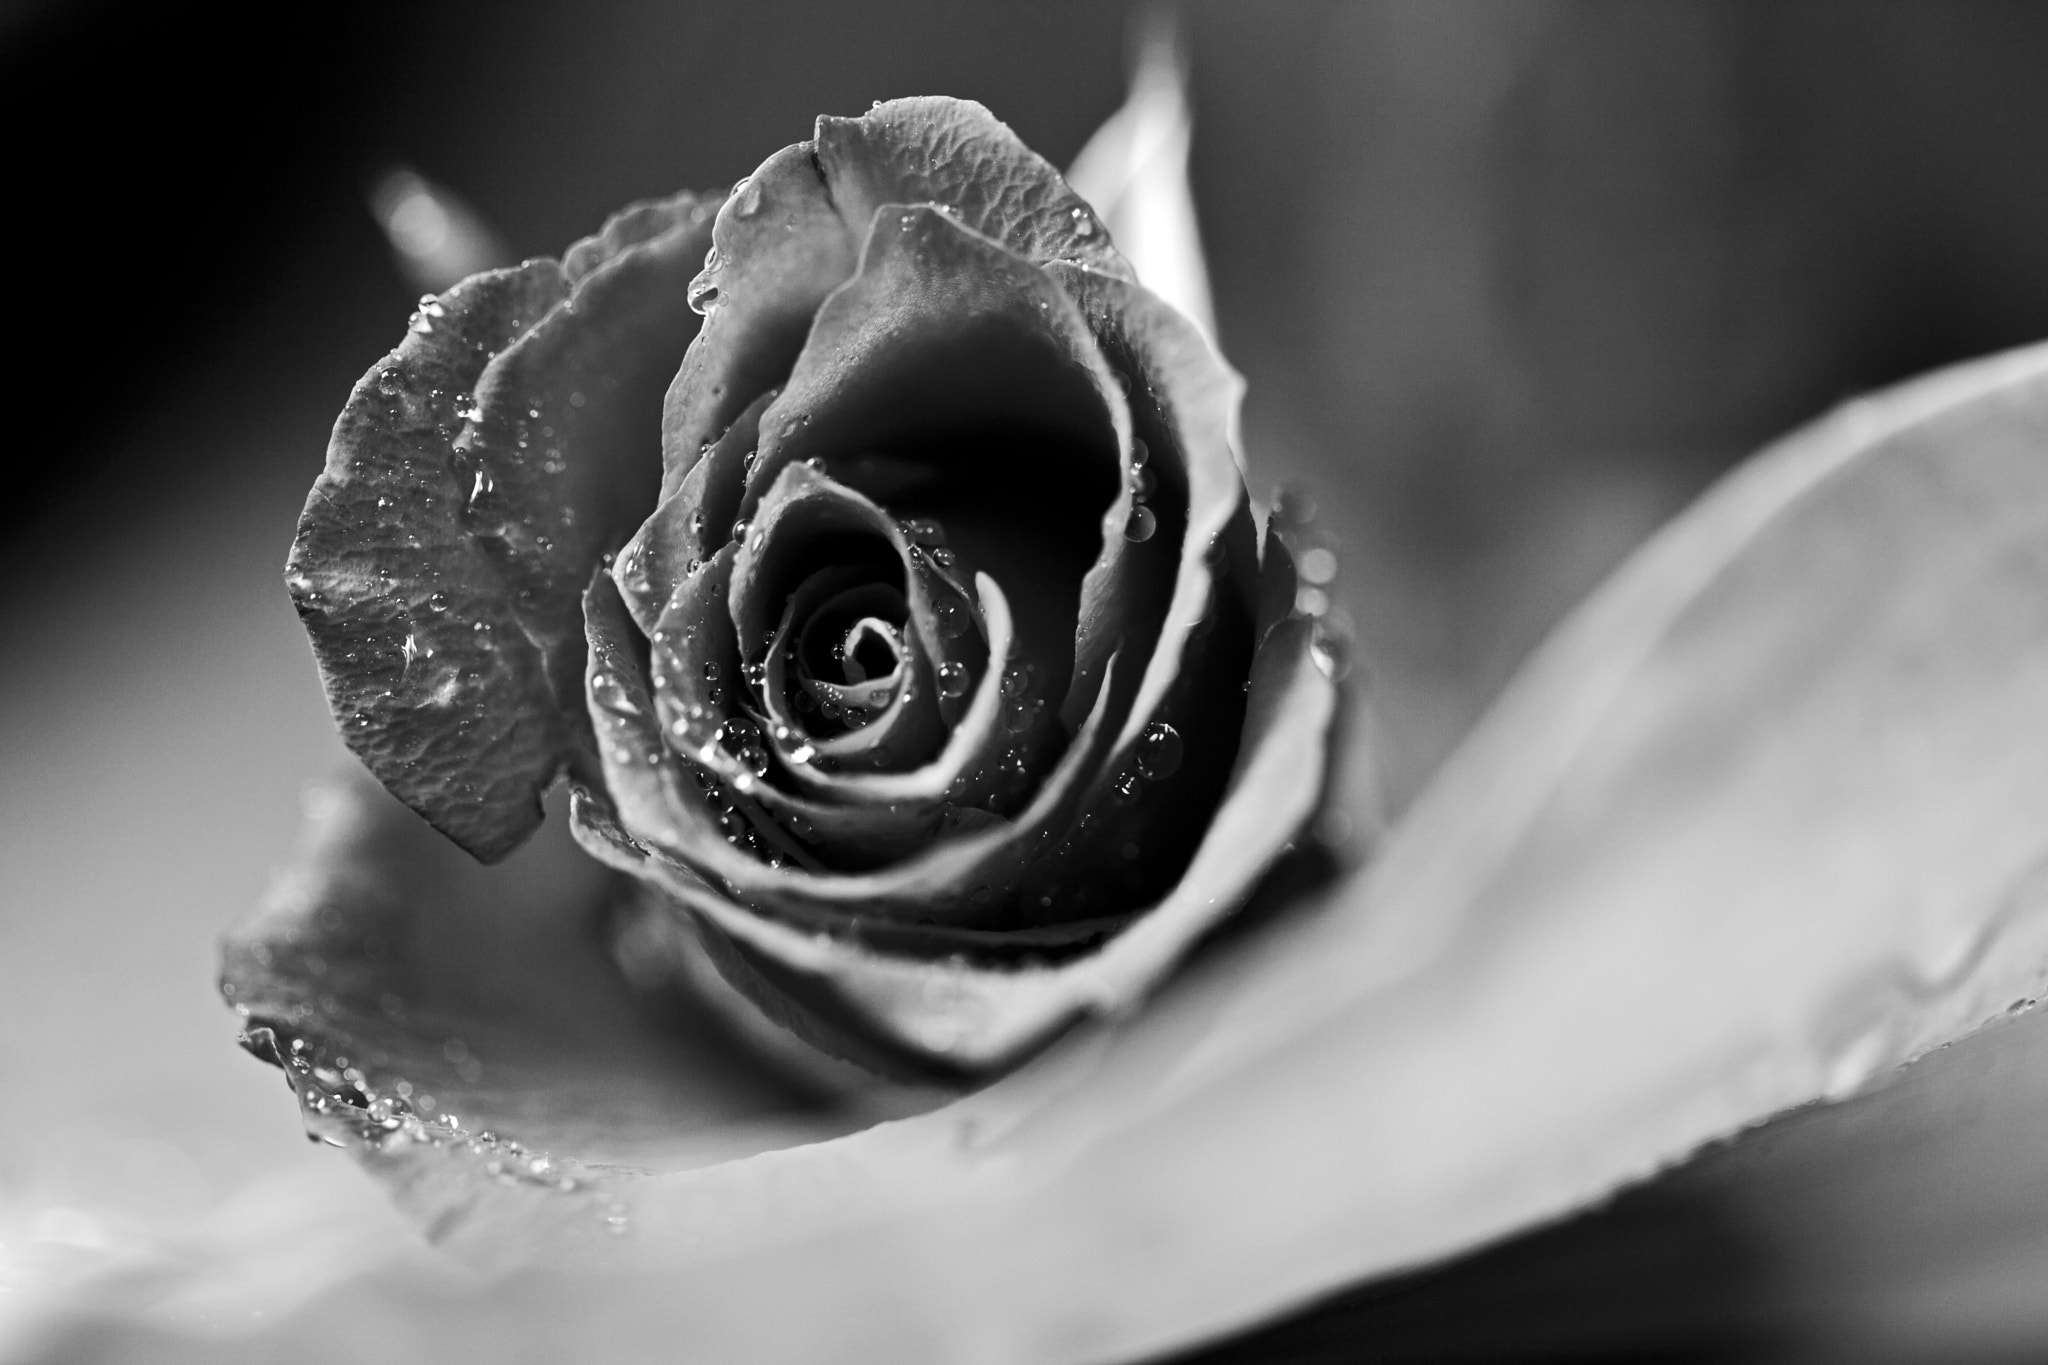 Photograph In black & white by DEW SP on 500px